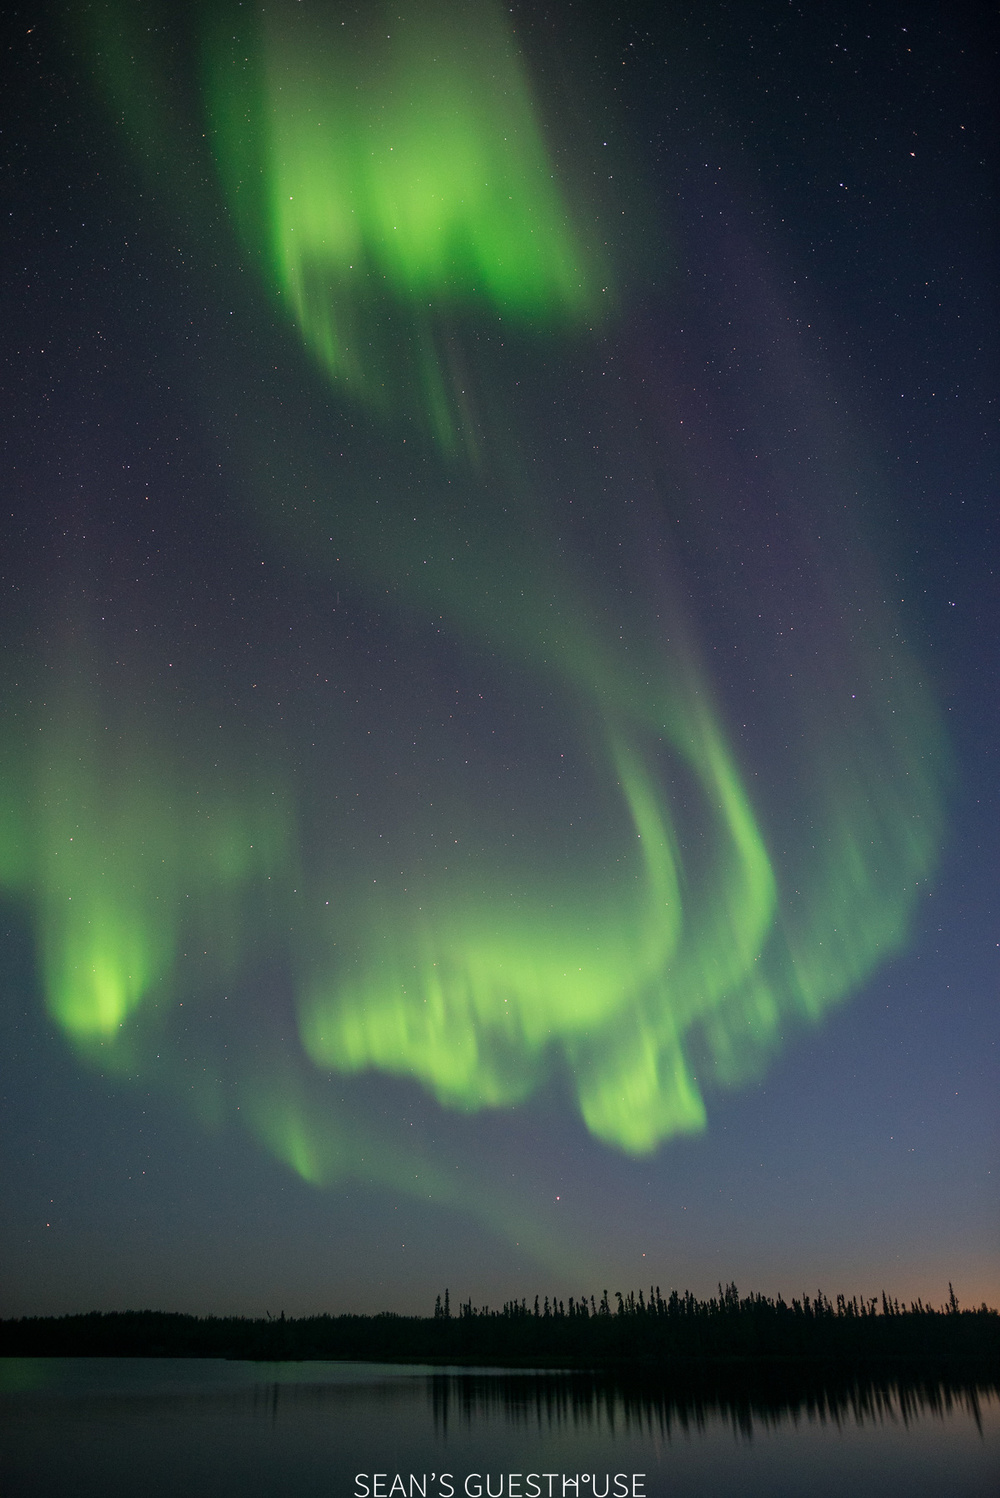 Sean's Guesthouse - Yellowknife Aurora Borealis - August Aurora - 5.jpg